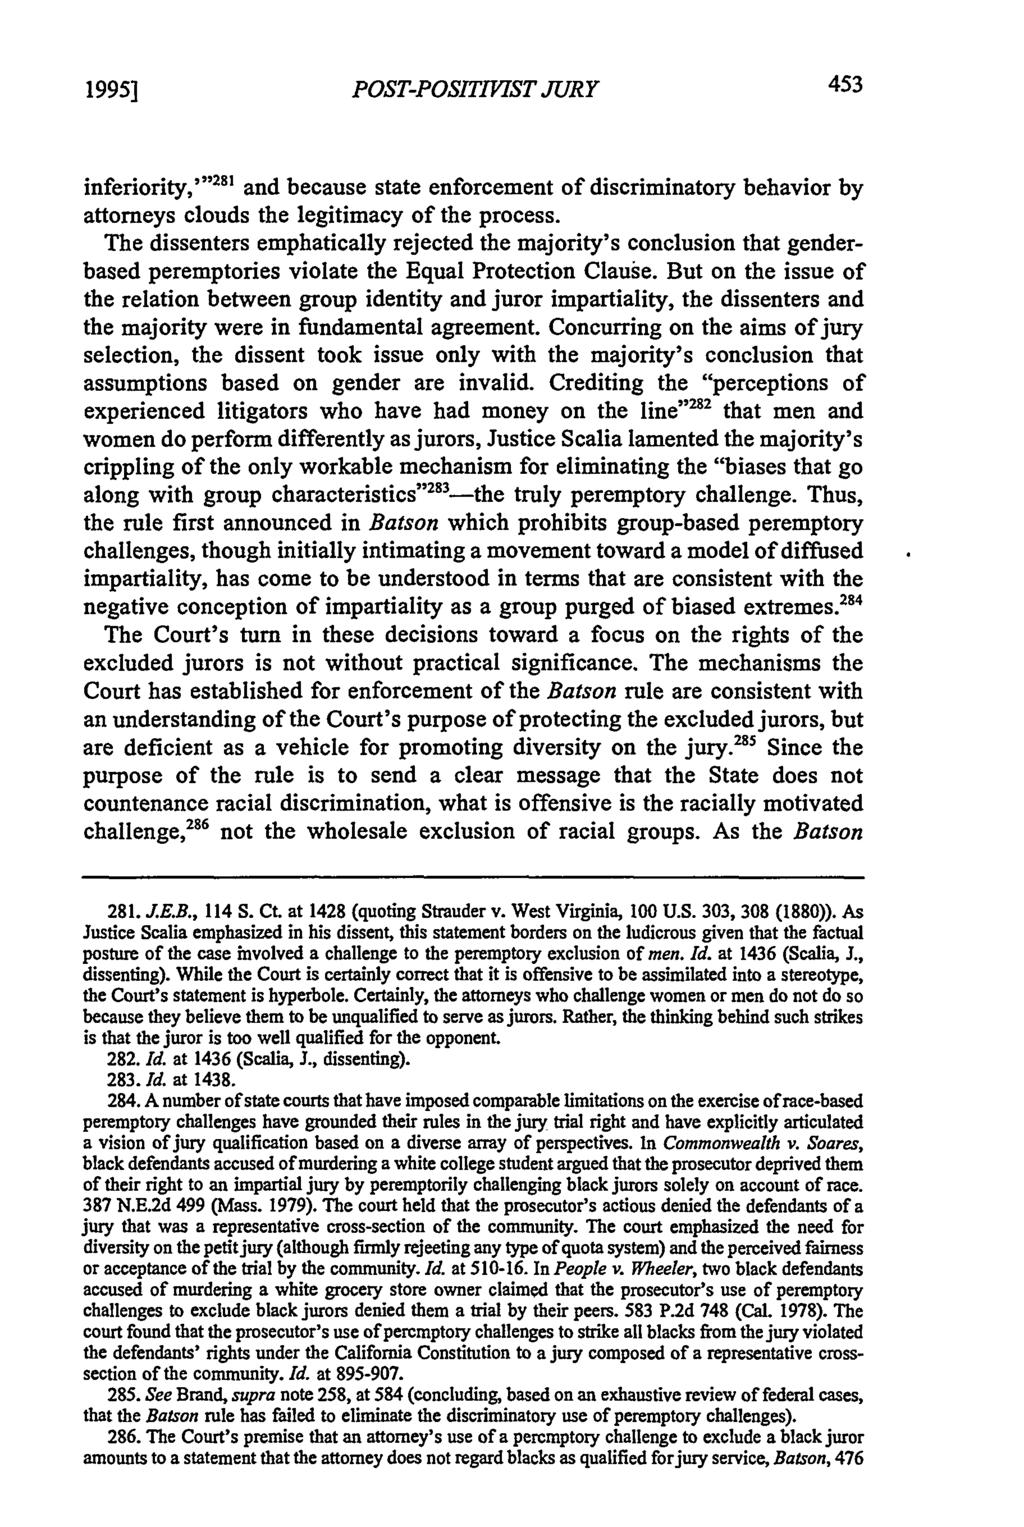 "1995] POST-POSITIIST JURY inferiority,""'281 and because state enforcement of discriminatory behavior by attorneys clouds the legitimacy of the process."